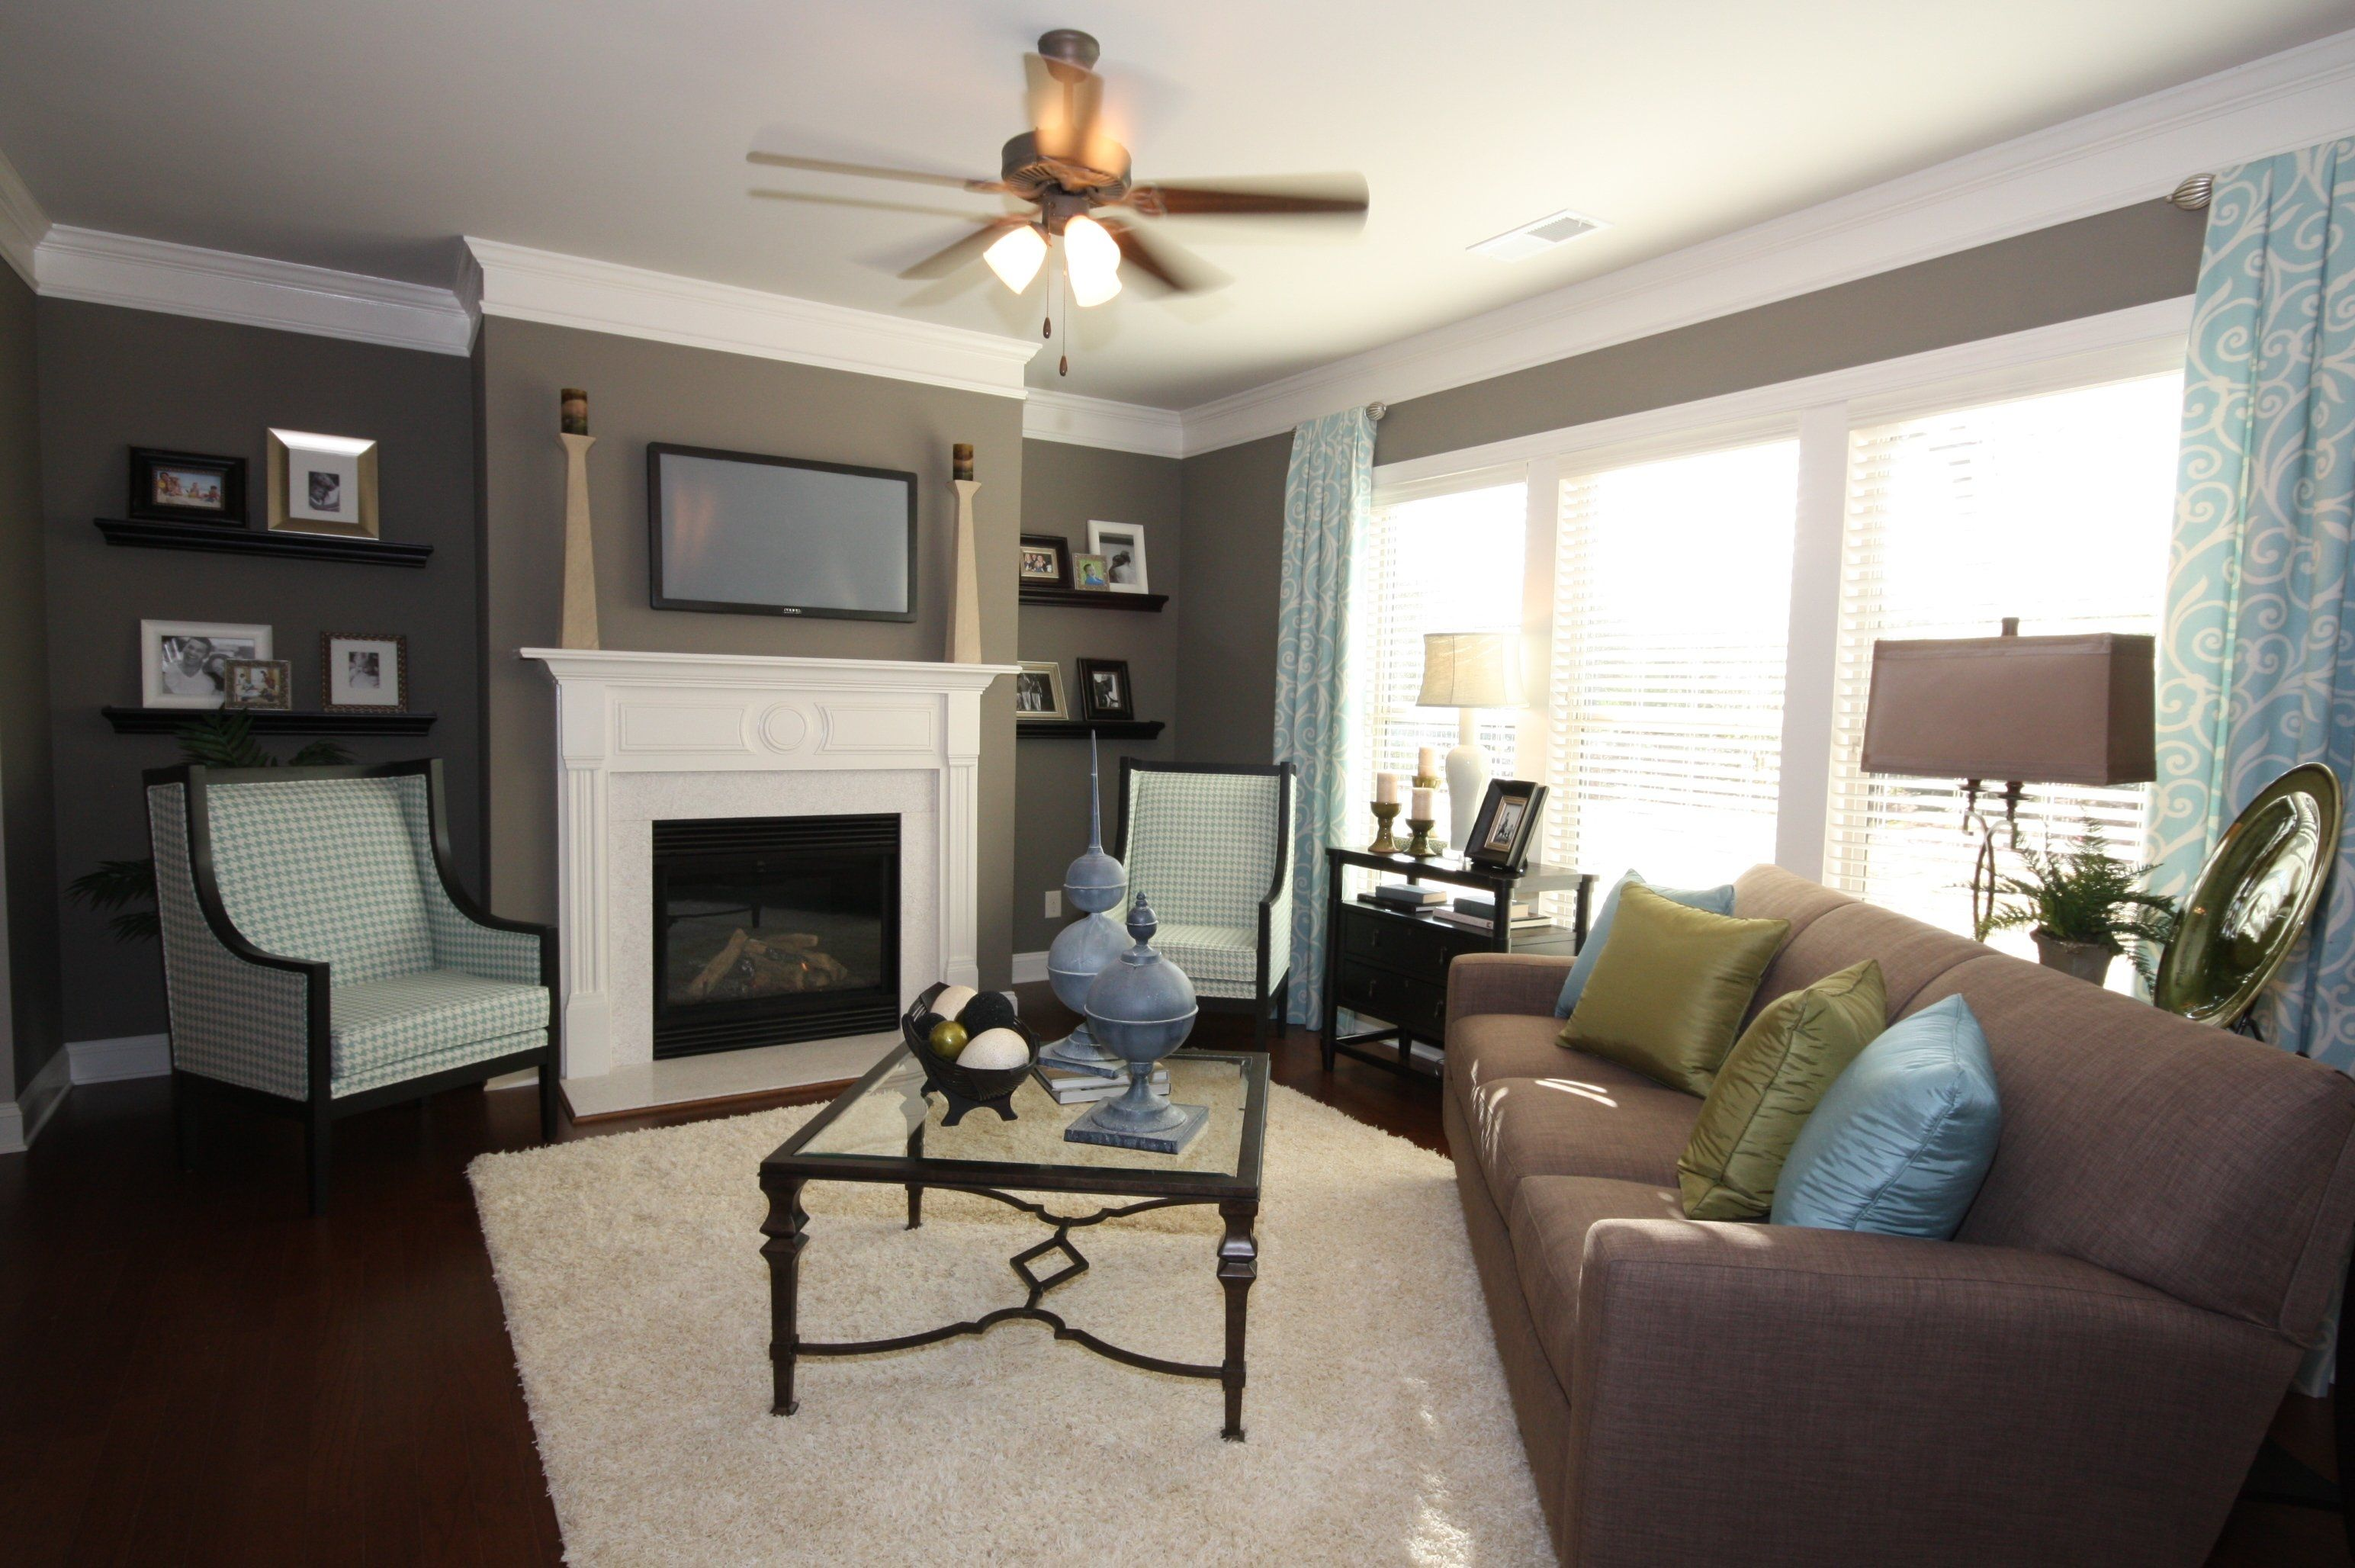 Best Blue Brown Grey Color Scheme In The Family Room Perfect Living Room Color Bedroom Color 400 x 300